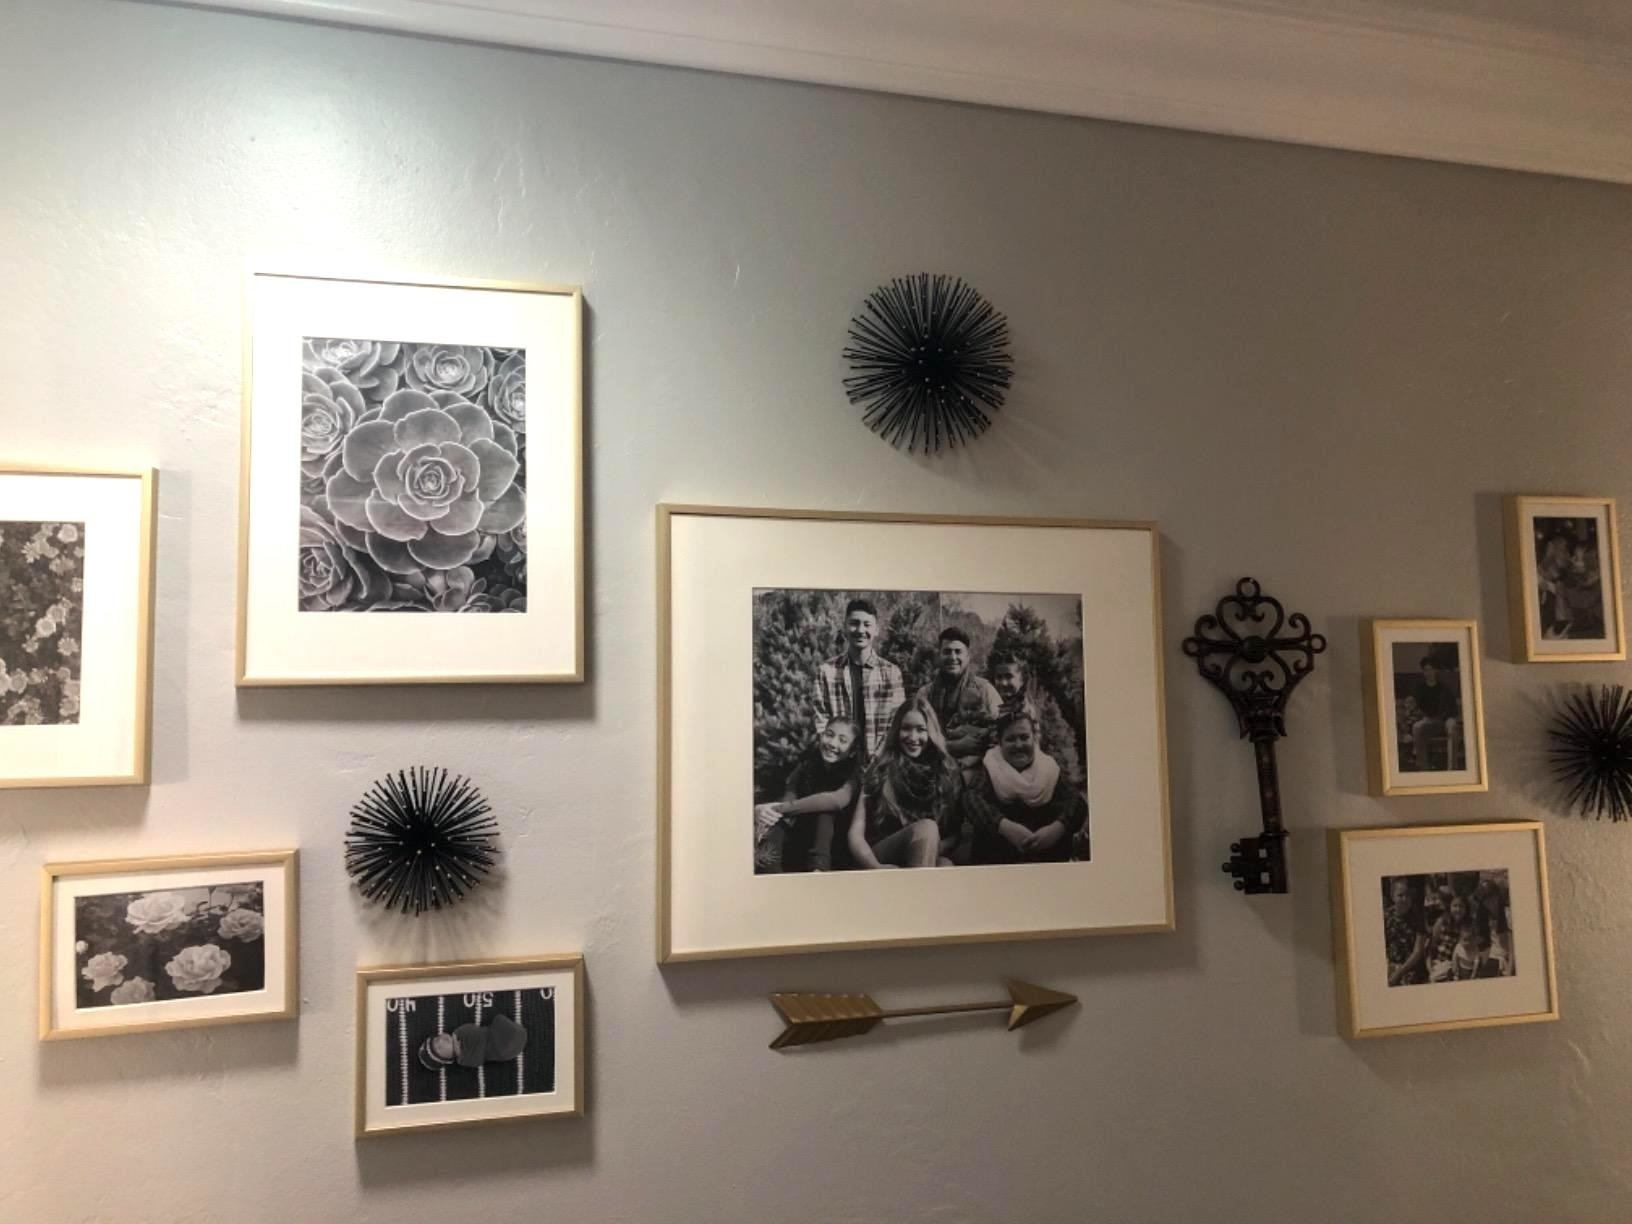 Reviewer image of their gallery wall using the gold frames